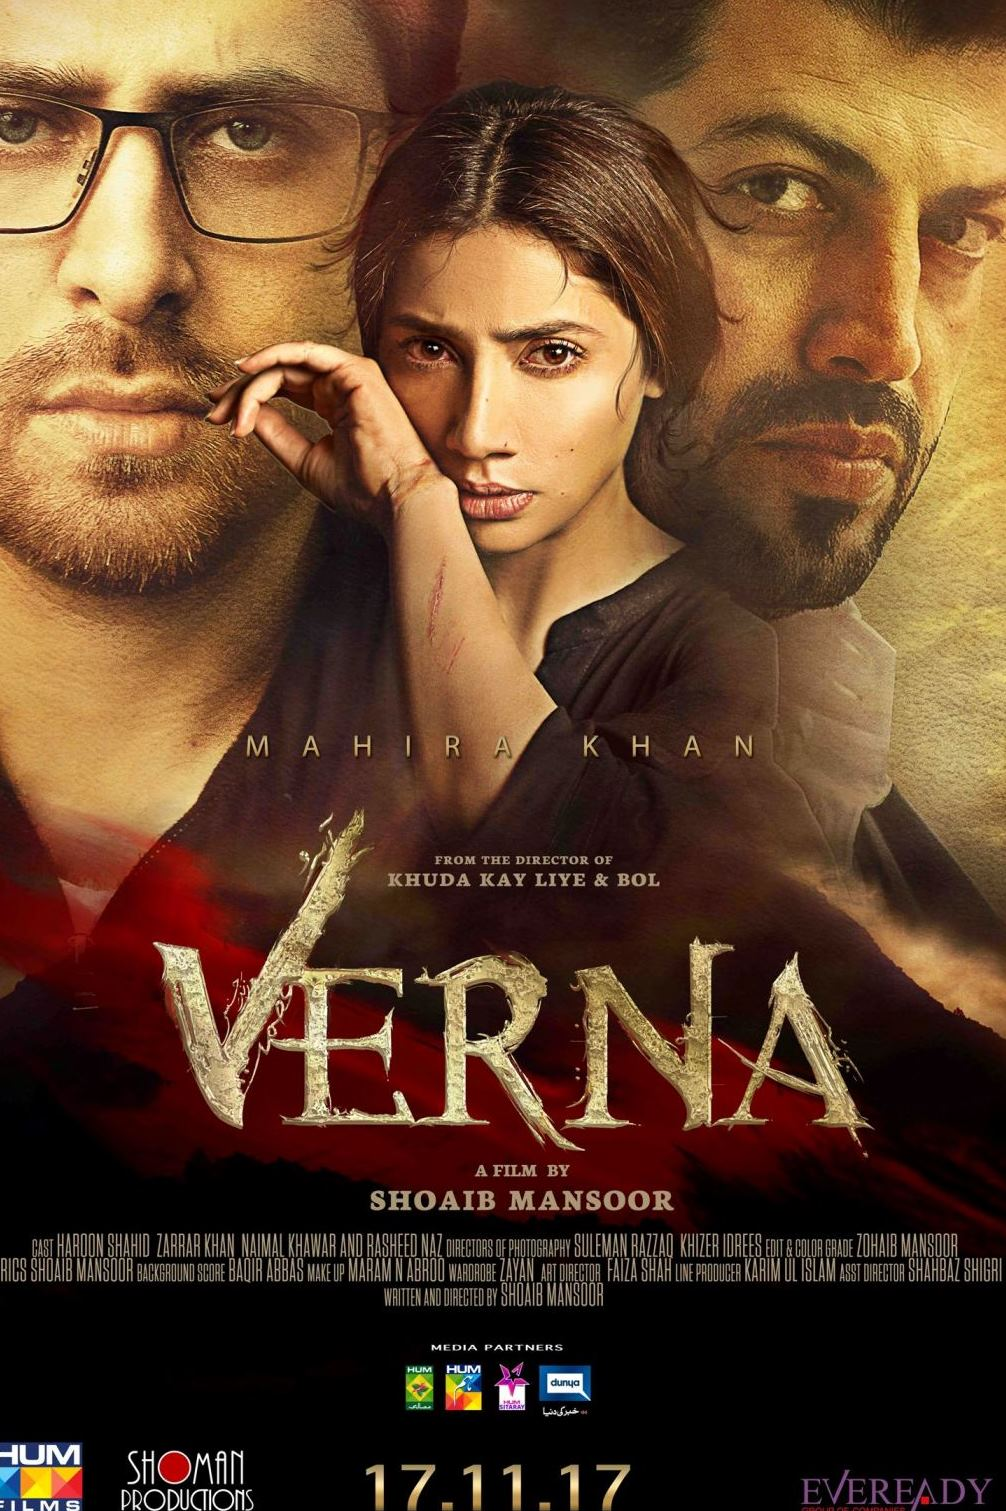 VERNA, THE TRULY MOVING & THOUGHT-PROVOKING SOCIO-DRAMA FROM THE GROUNDBREAKING FILMMAKERS OF 'KHUDA KAY LIYE' BRINGS FEMALE EMPOWERMENT TO THE FORE